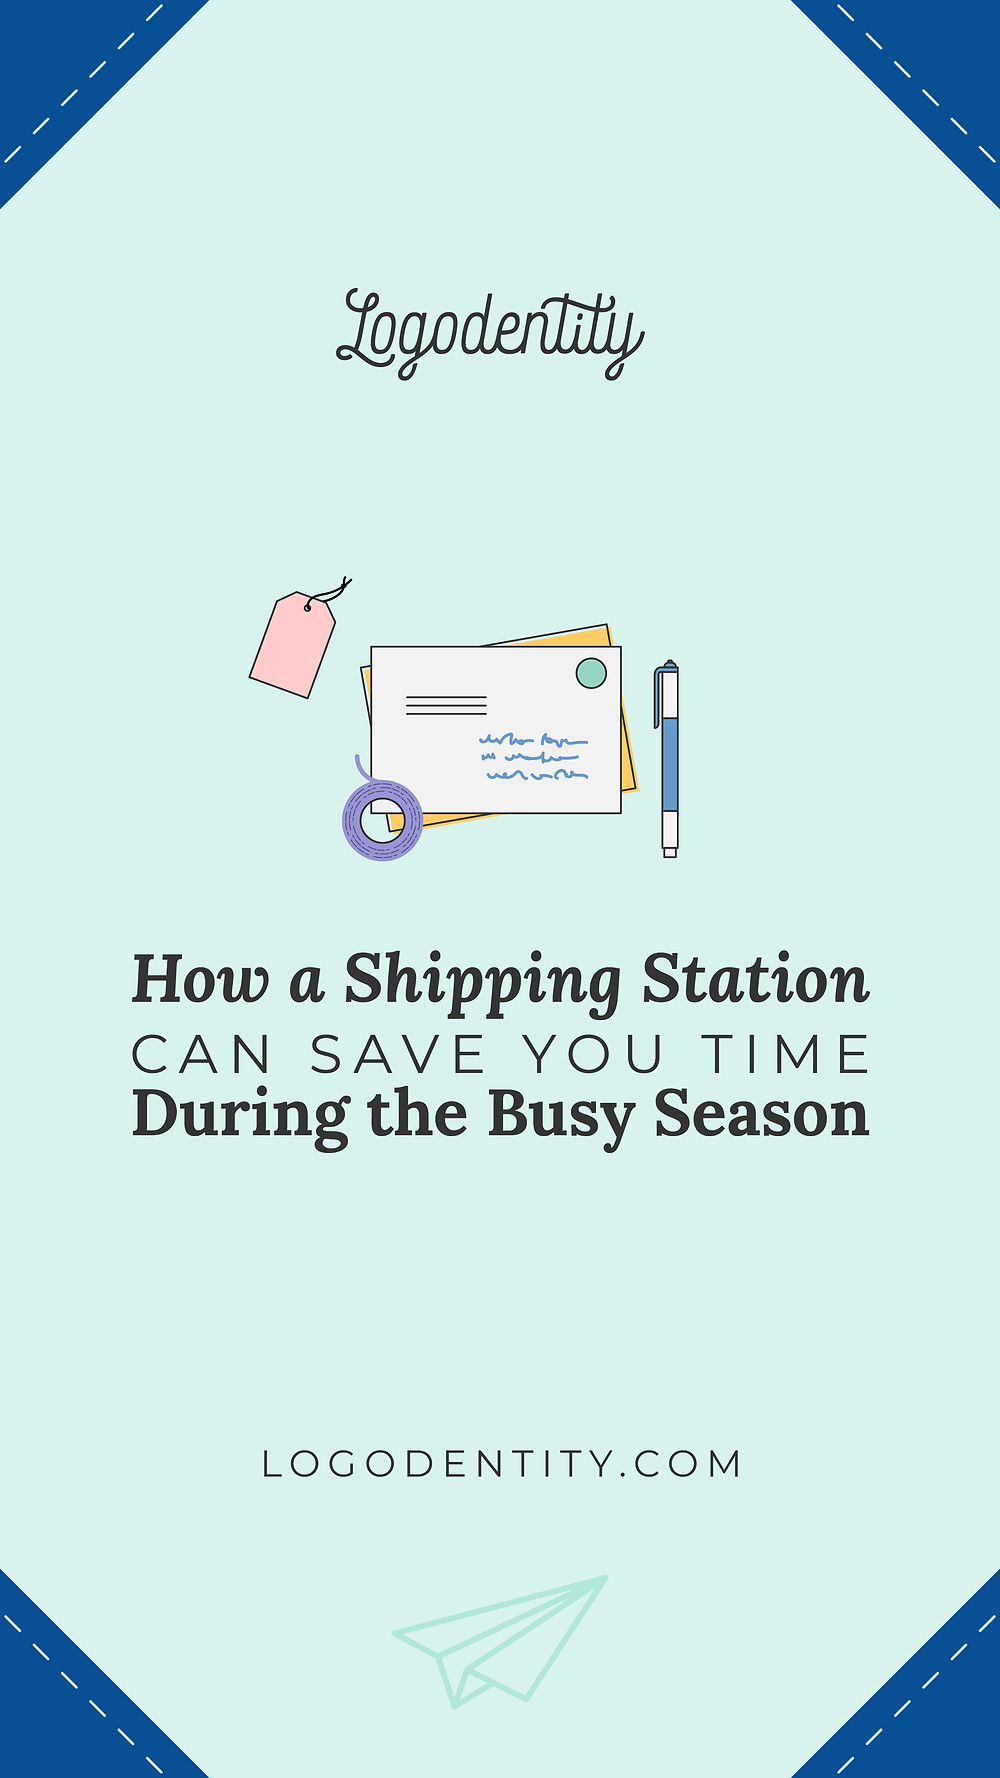 How a Shipping Station Can Save You Time During the Busy Season